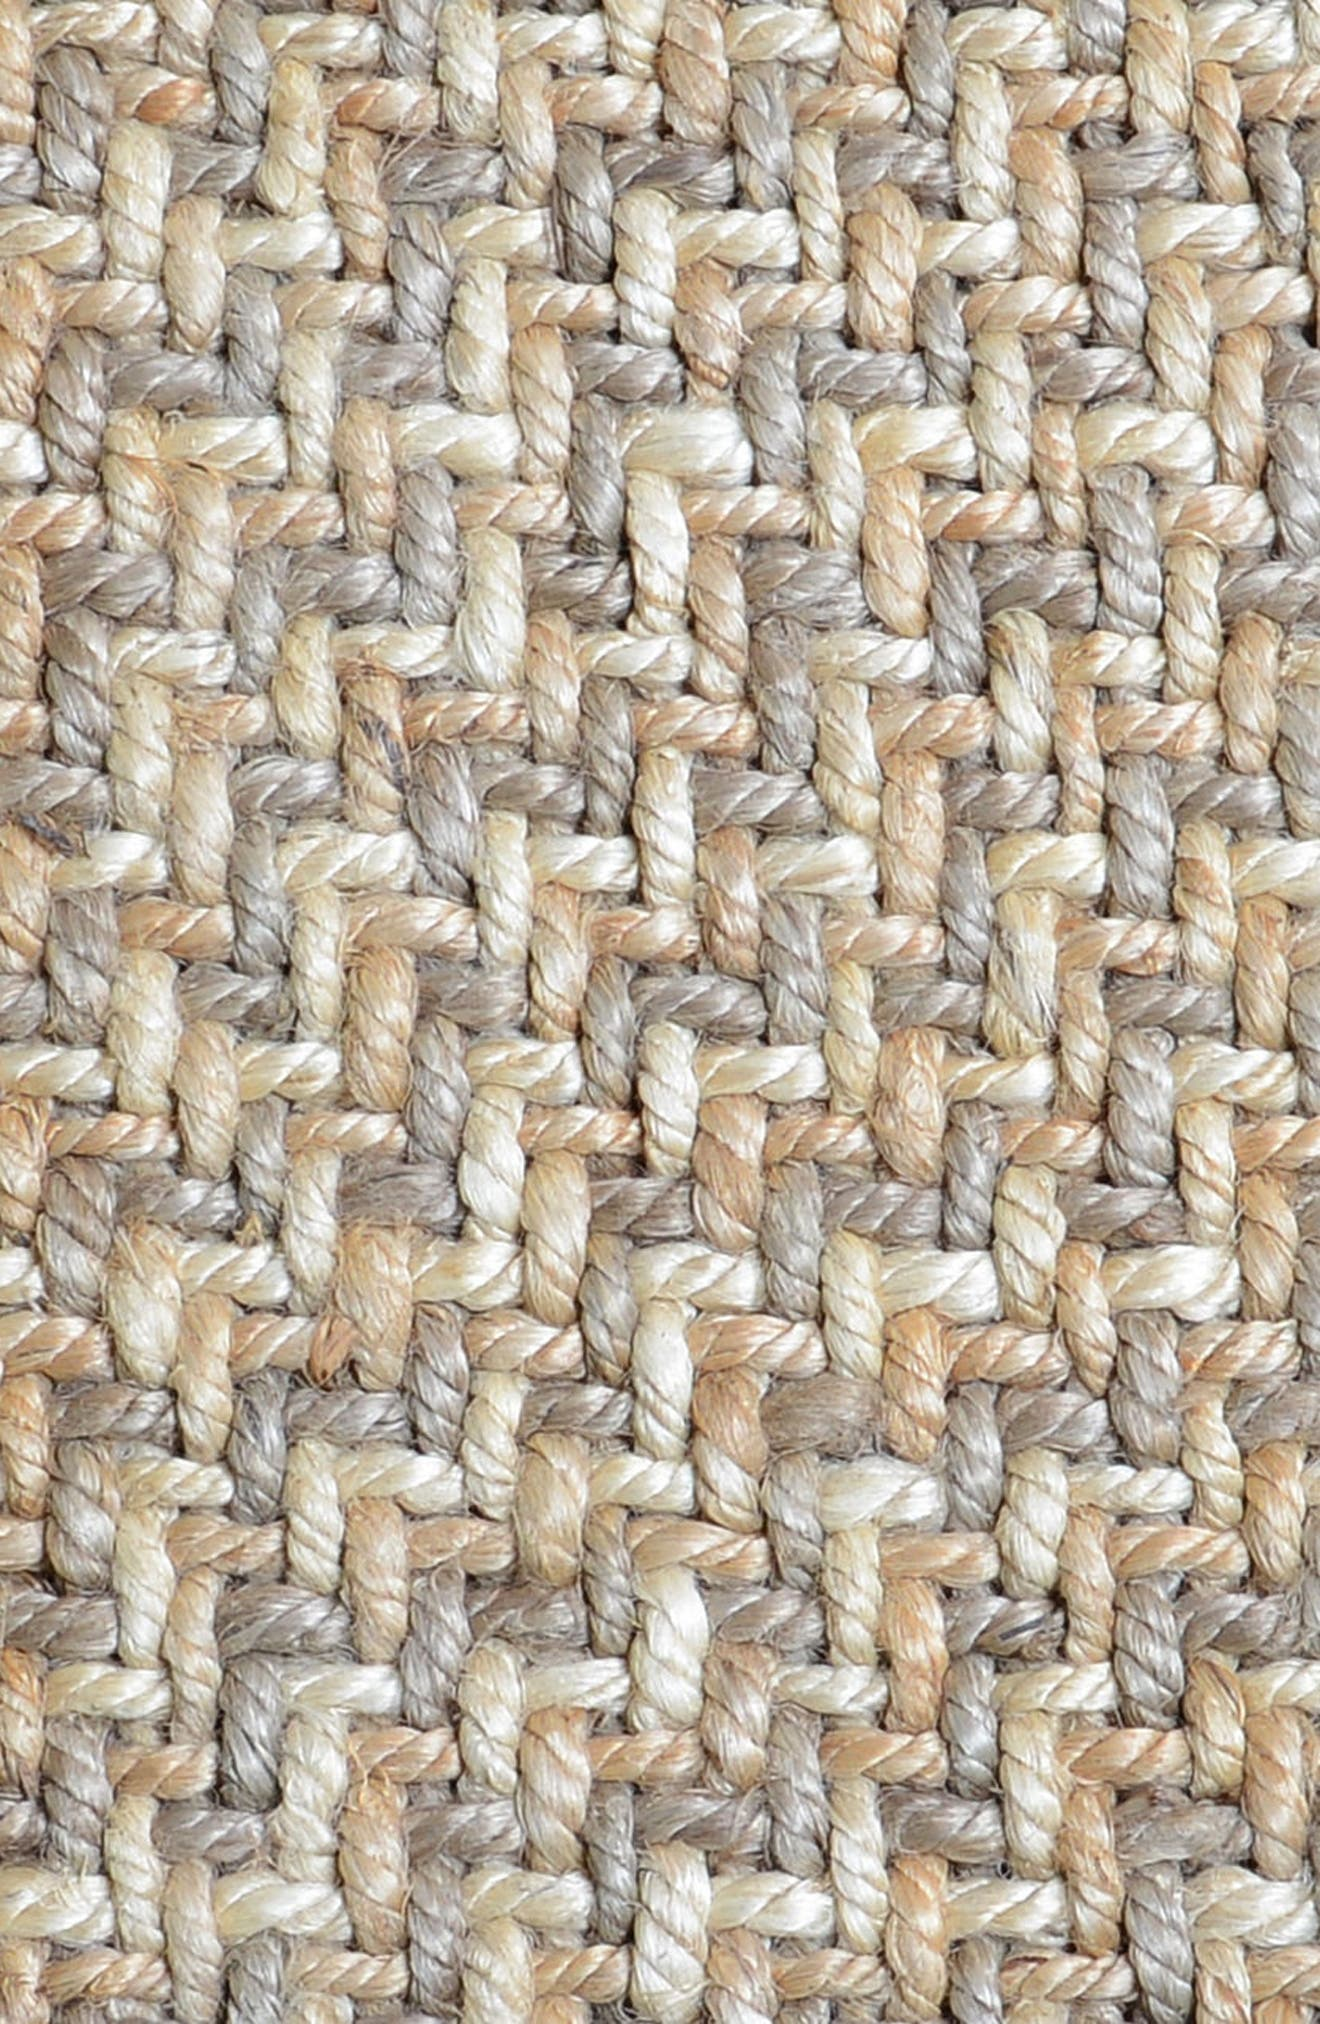 Ladera Handwoven Rug,                             Alternate thumbnail 3, color,                             250